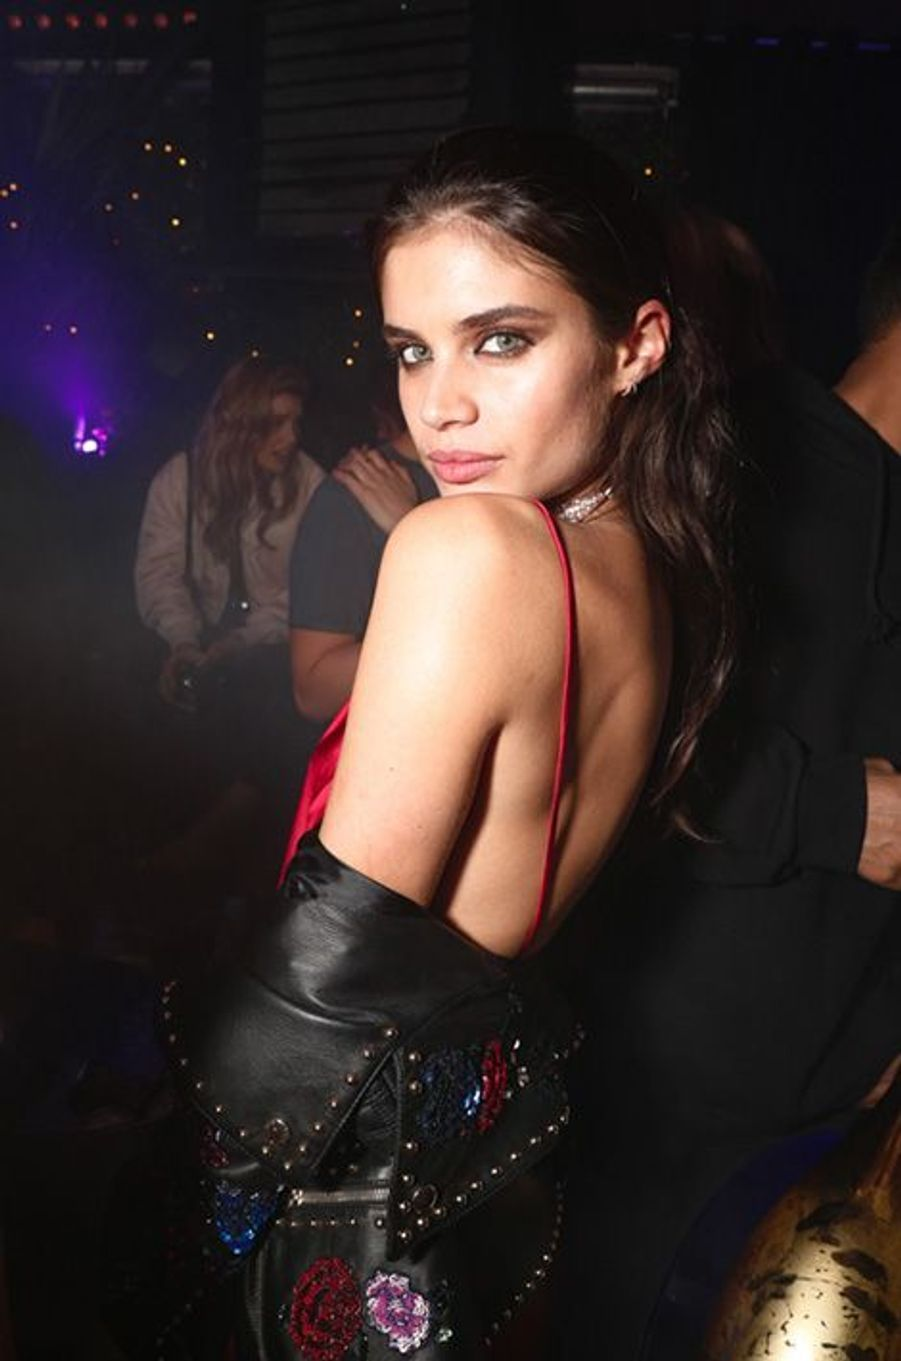 Sara Sampaio à l'Arc lors de la Fashion Week parisienne.